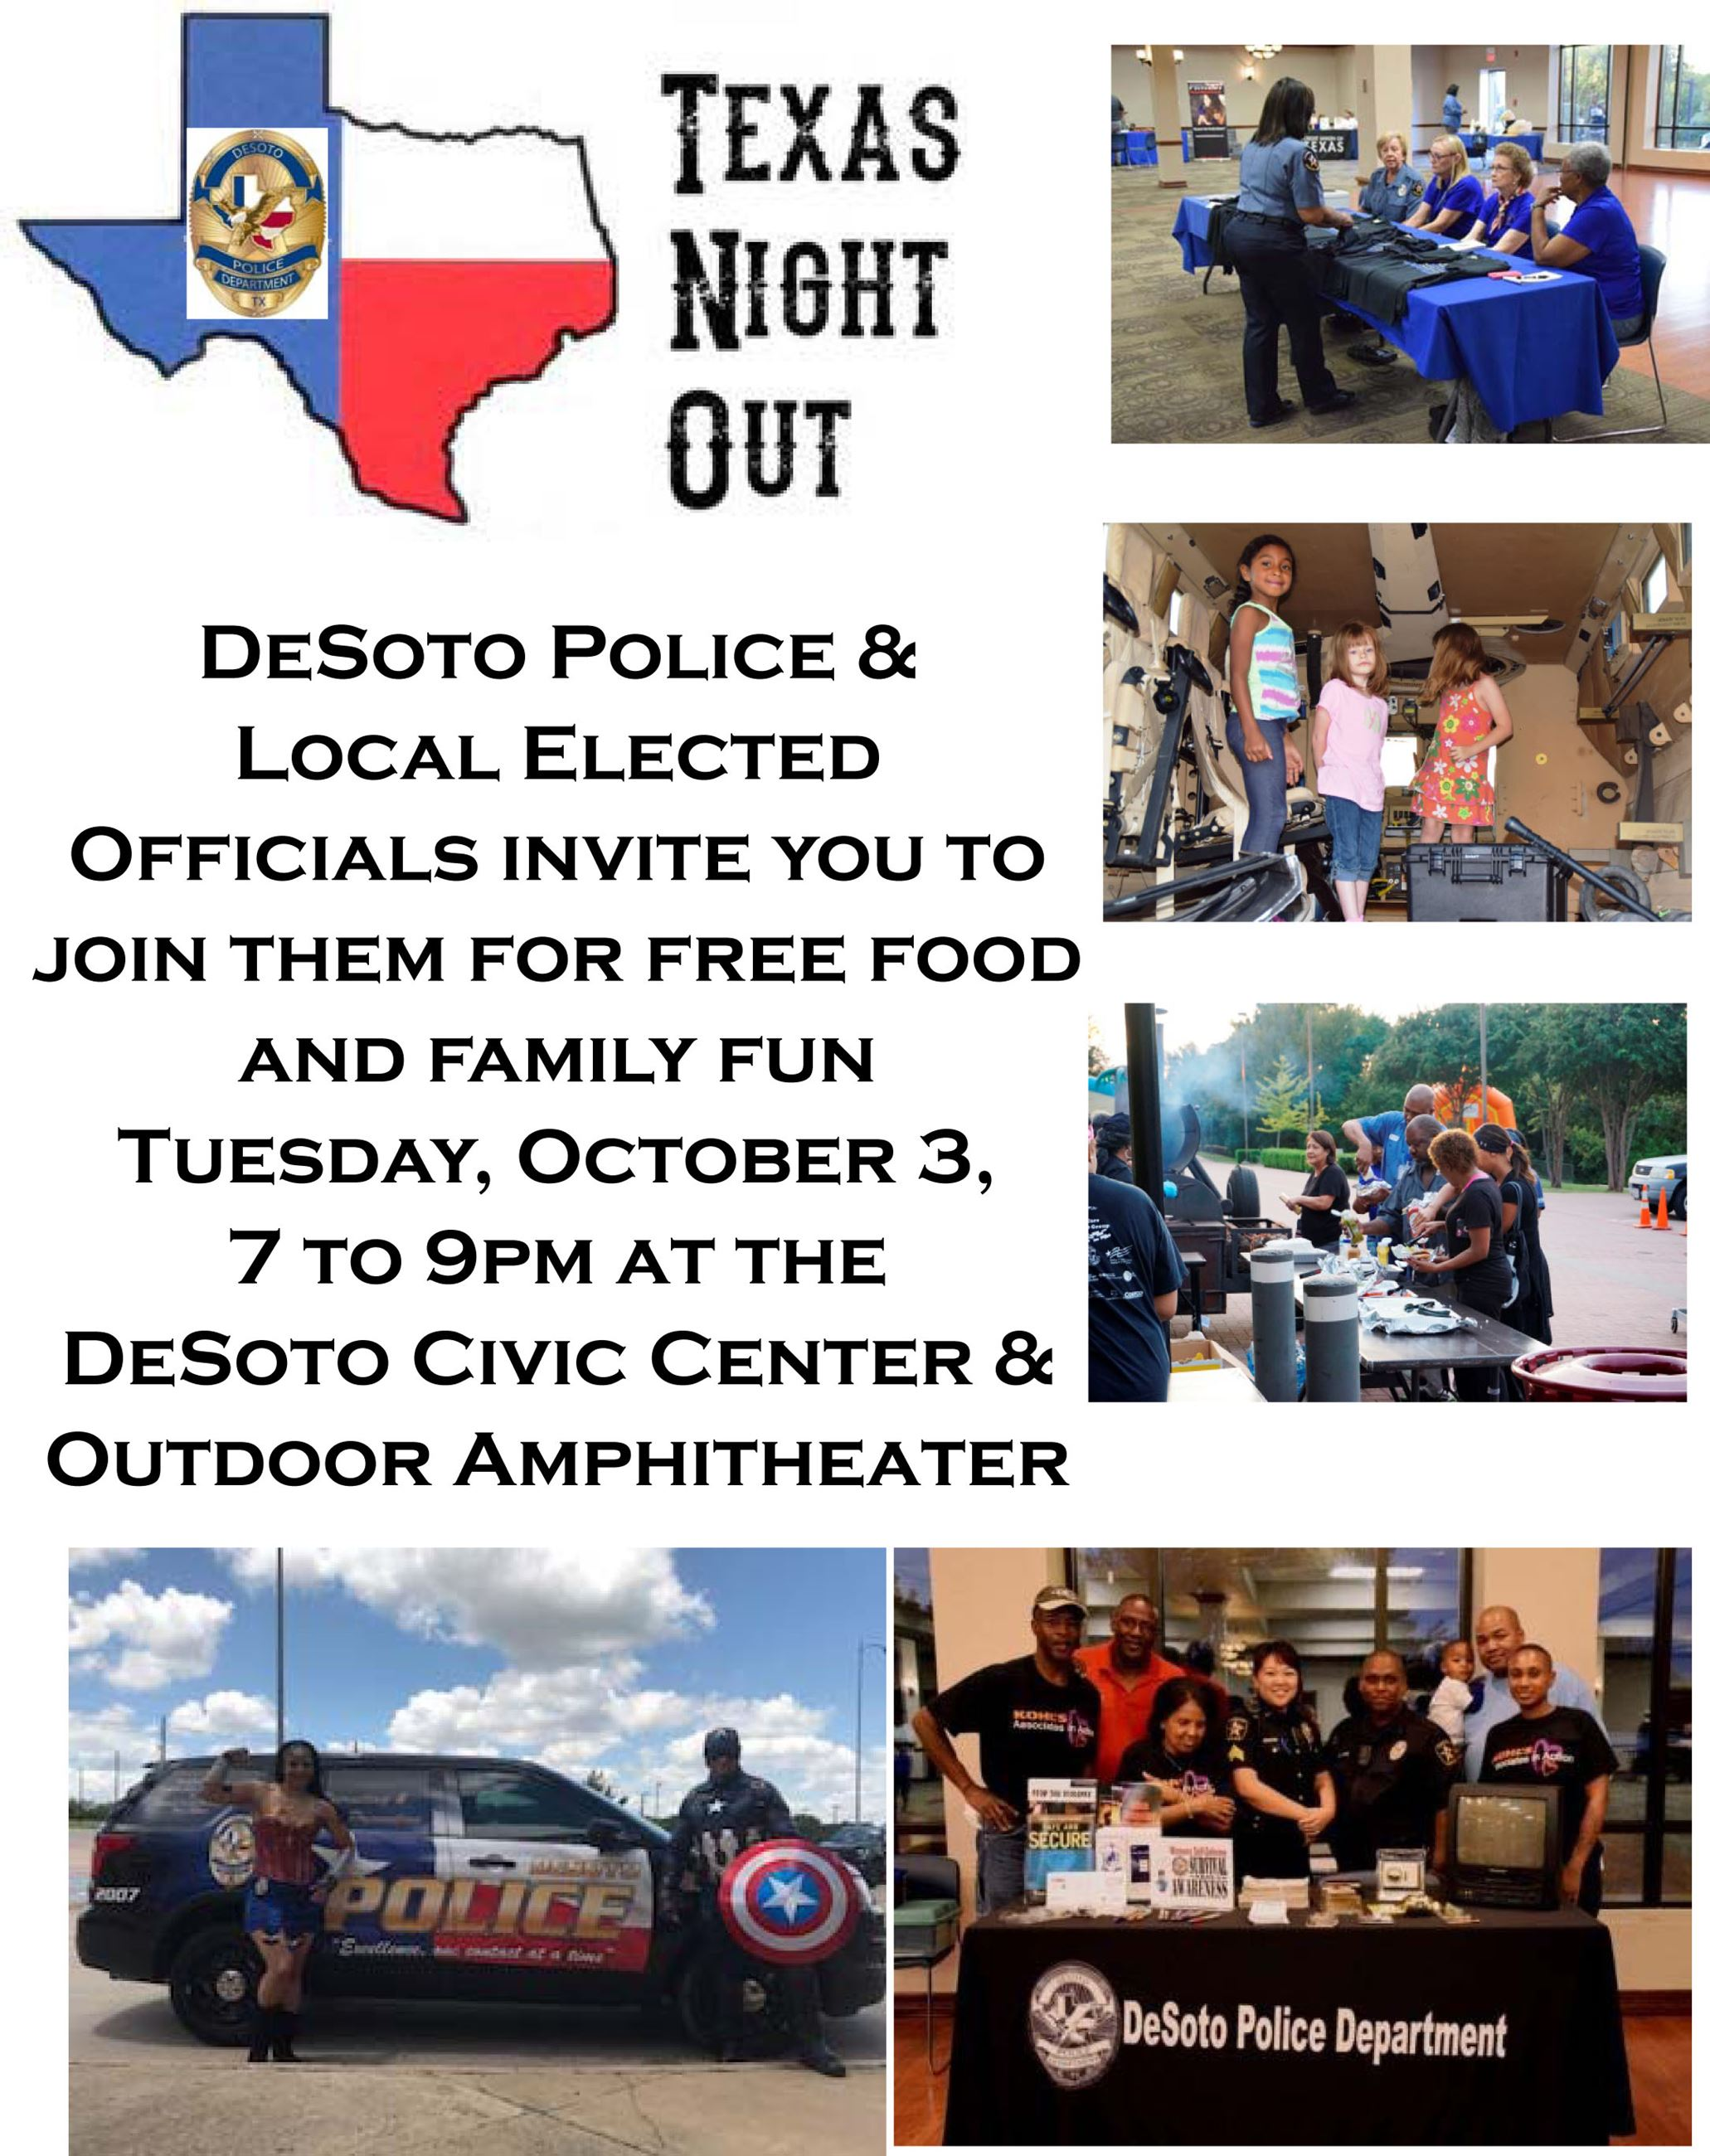 2017 Texas Night Out